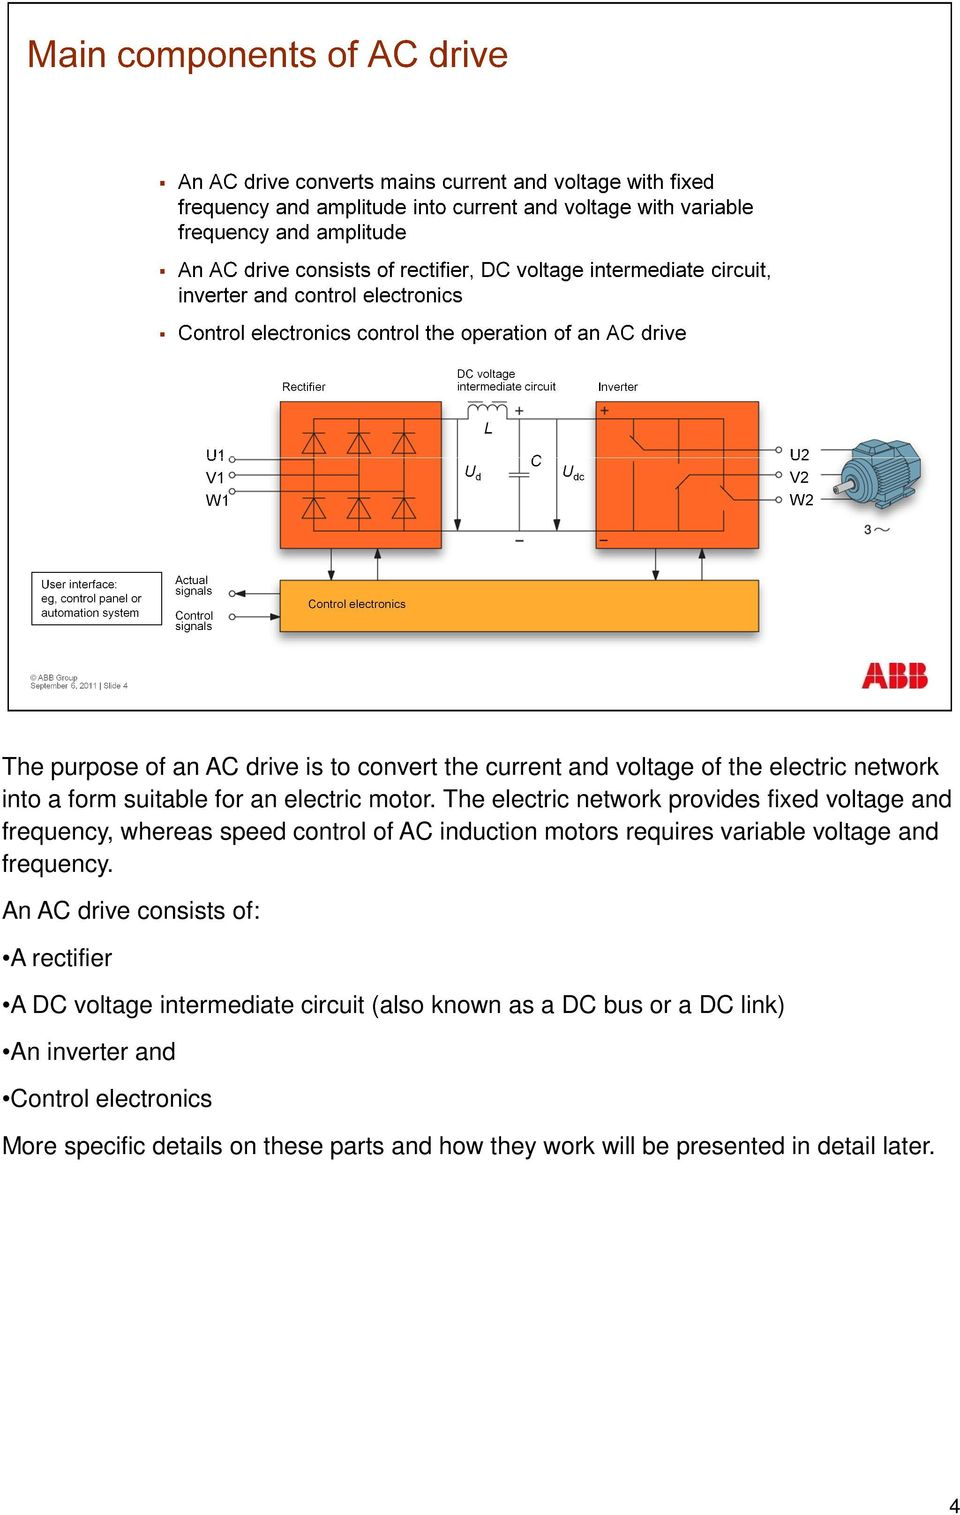 The electric network provides fixed voltage and frequency, whereas speed control of AC induction motors requires variable